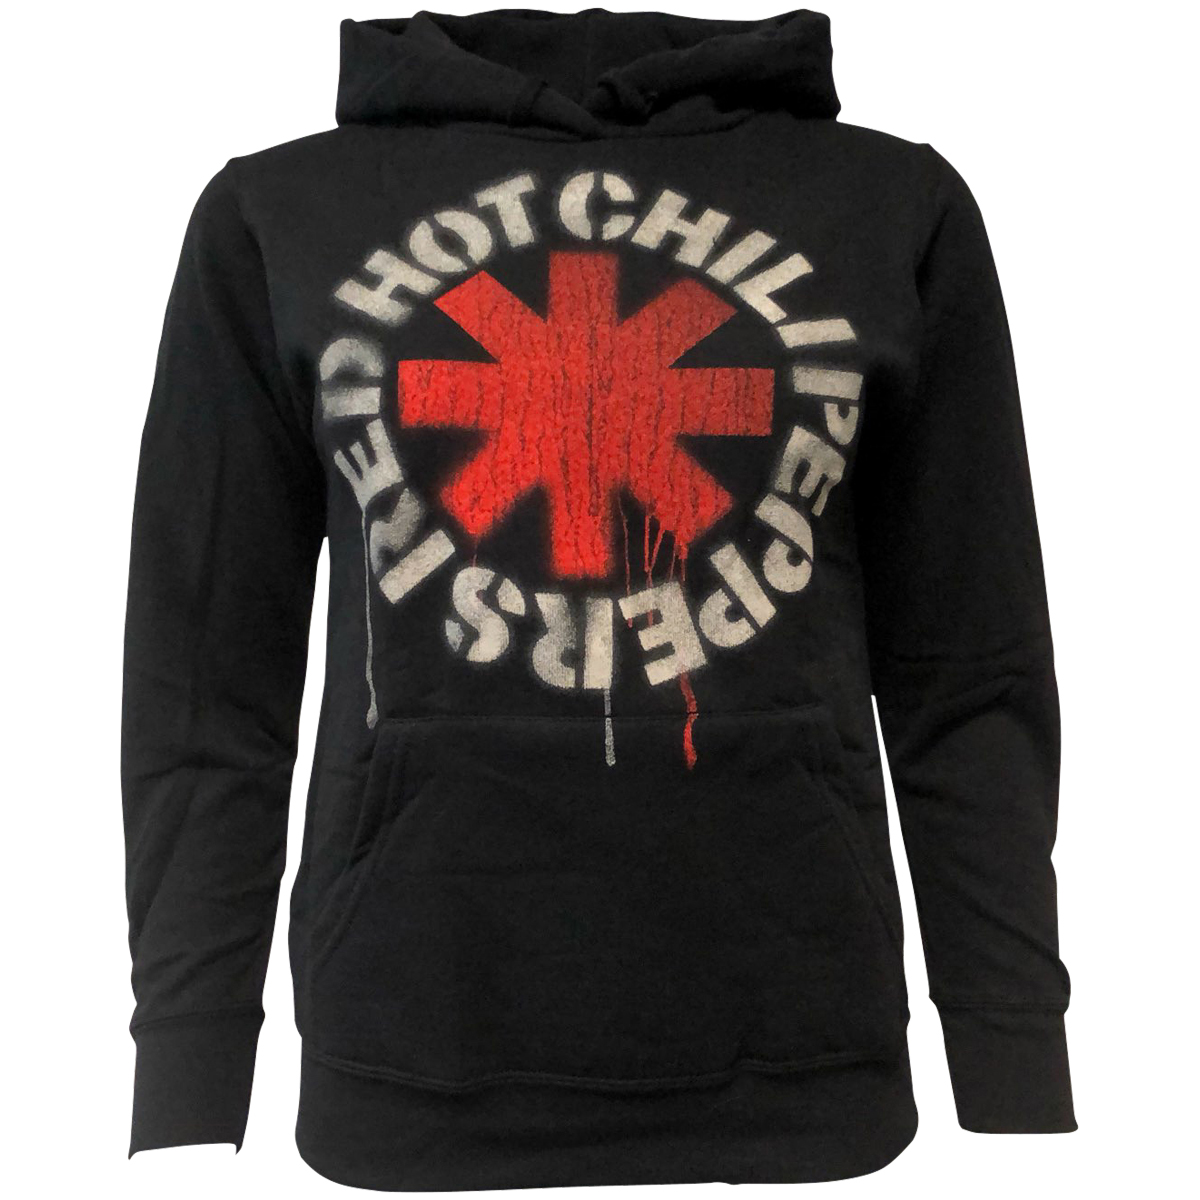 Red Hot Chili Peppers - Damen Kapuzenpullover Asterisks - schwarz